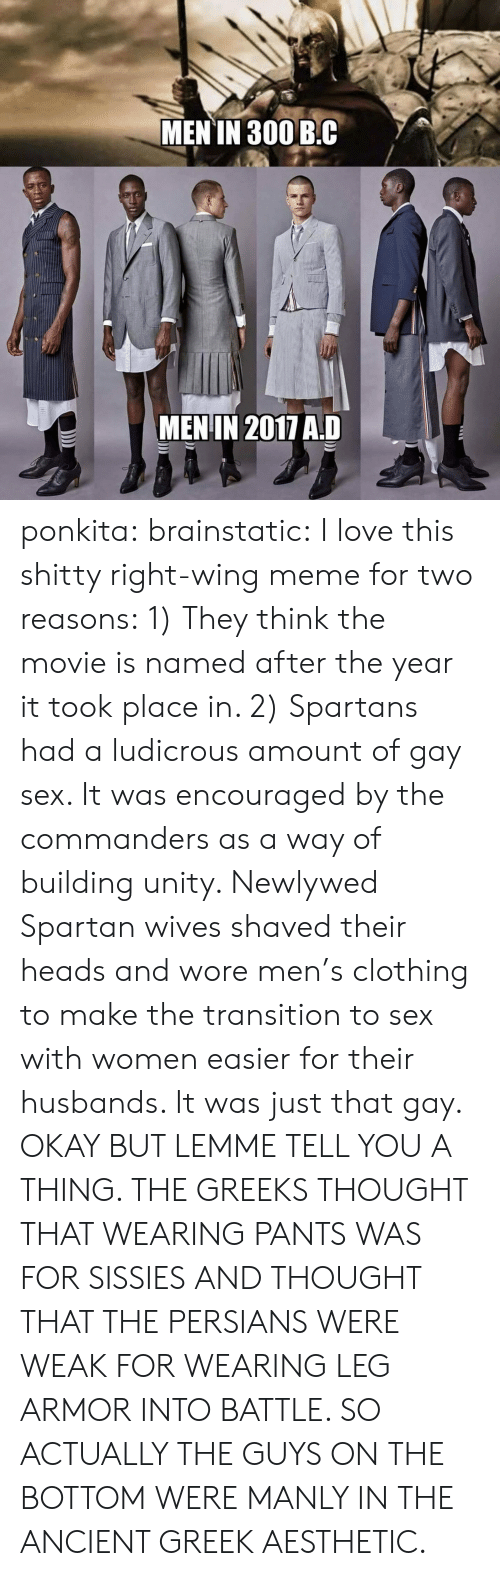 Love, Meme, and Sex: MEN TN 300 B.C  MENIN 2017 AD ponkita:  brainstatic:  I love this shitty right-wing meme for two reasons:  1) They think the movie is named after the year it took place in.   2) Spartans had a ludicrous amount of gay sex. It was encouraged by the commanders as a way of building unity. Newlywed Spartan wives shaved their heads and wore men's clothing to make the transition to sex with women easier for their husbands. It was just that gay.  OKAY BUT LEMME TELL YOU A THING. THE GREEKS THOUGHT THAT WEARING PANTS WAS FOR SISSIES AND THOUGHT THAT THE PERSIANS WERE WEAK FOR WEARING LEG ARMOR INTO BATTLE. SO ACTUALLY THE GUYS ON THE BOTTOM WERE MANLY IN THE ANCIENT GREEK AESTHETIC.